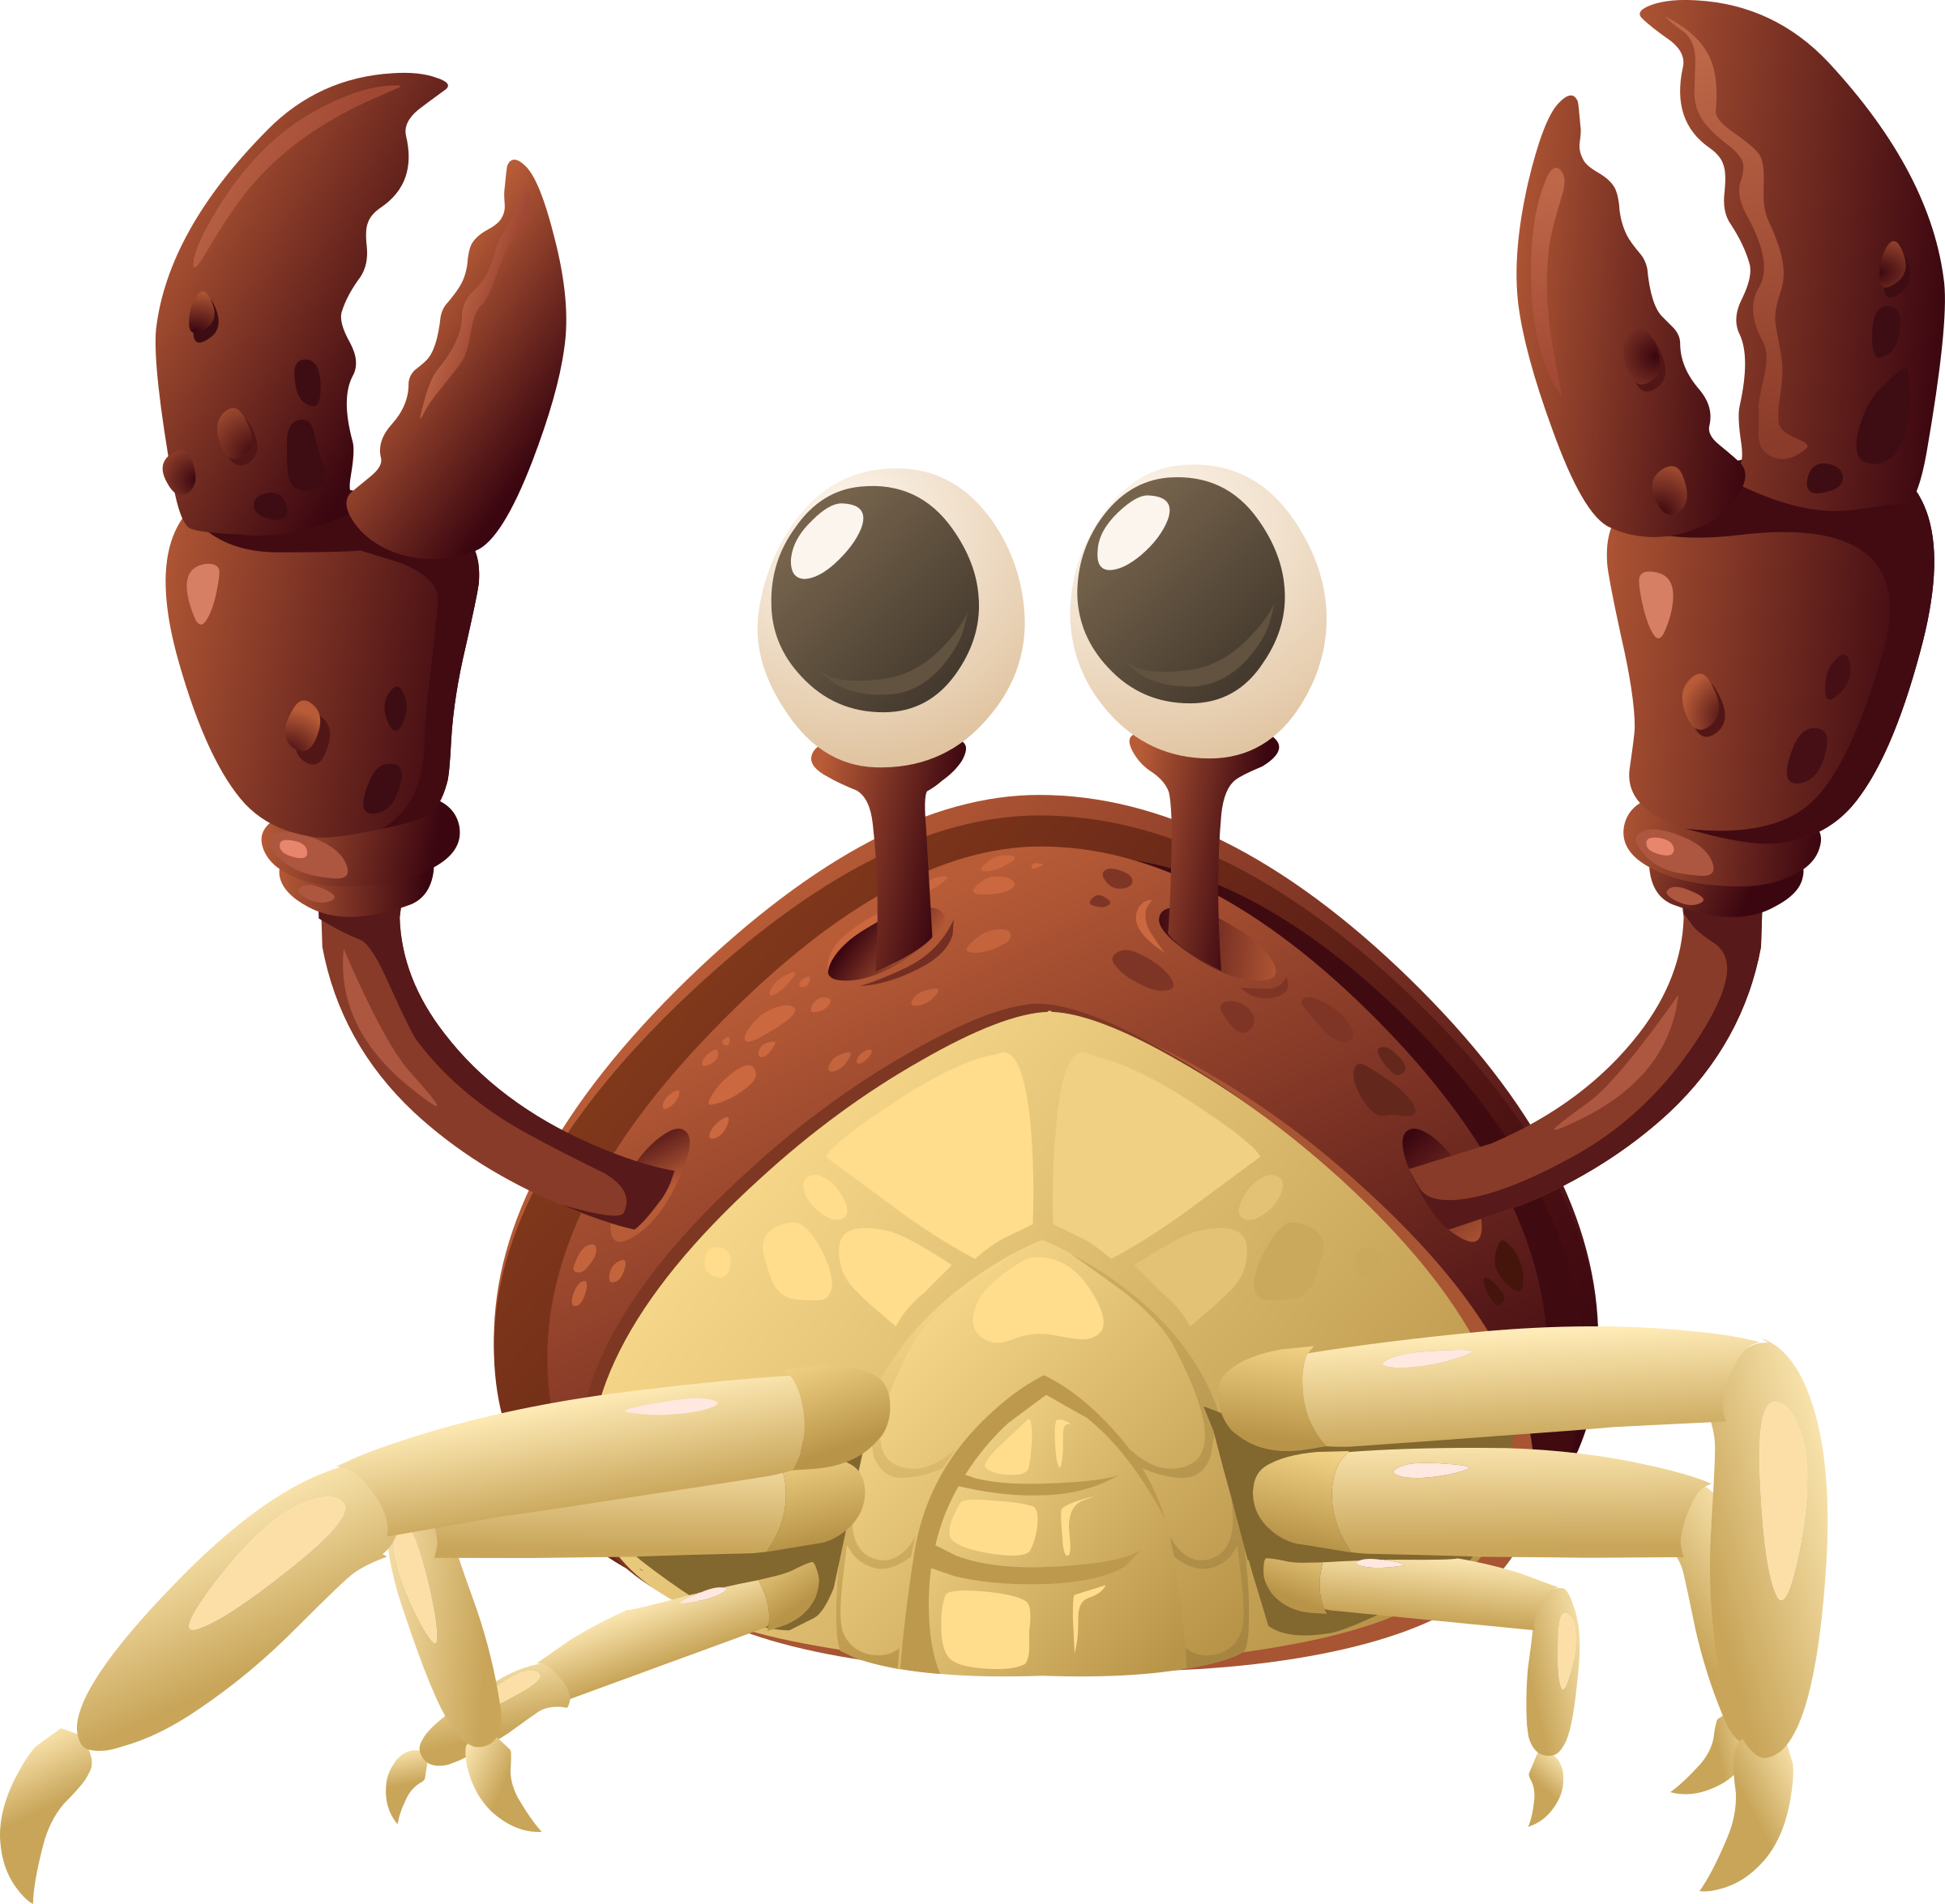 Fish in distress clipart vector library Inhabitants Npc Crab by glitch | cc0 | Pinterest | Glitch video vector library